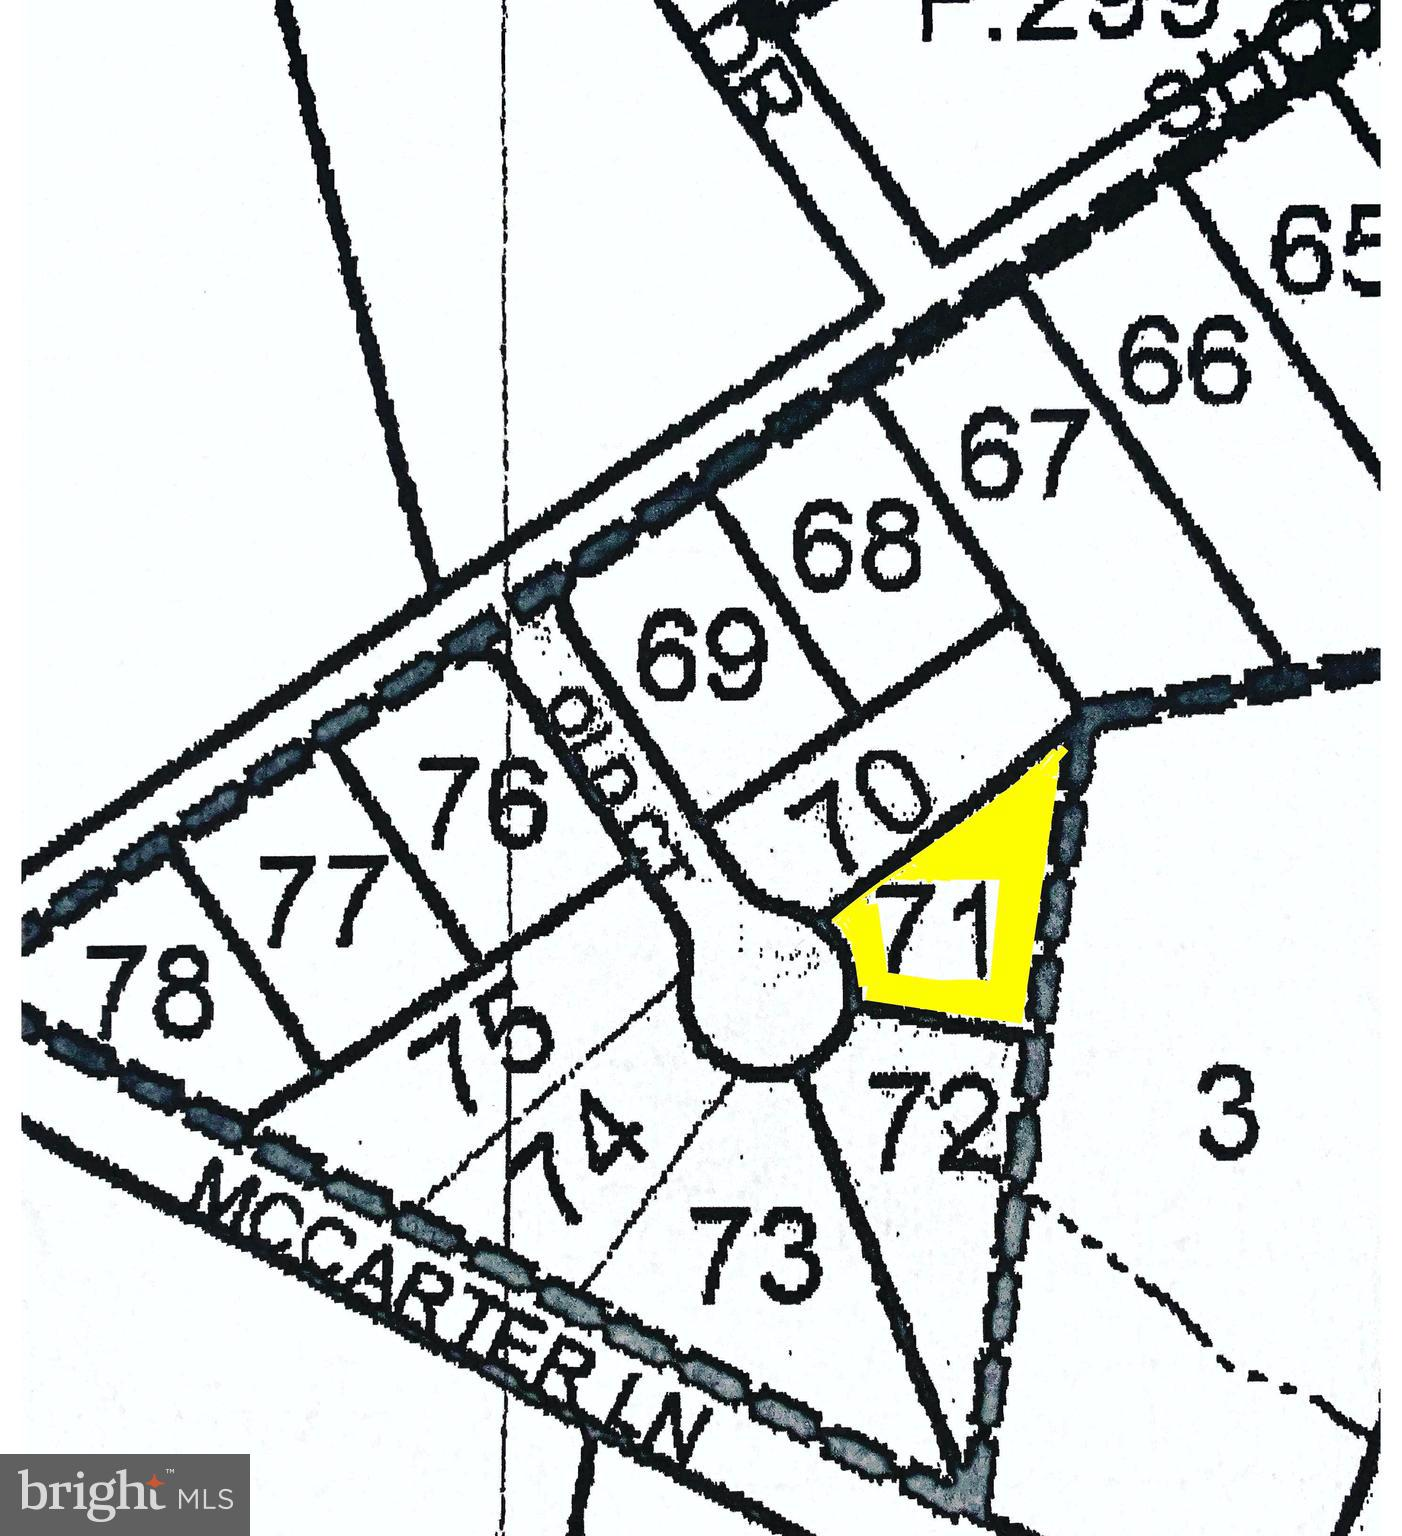 This is lot 71 on Old Ct.      Lots 70, 71 and 72 are each available from this seller.    Public Septic is available but not connected.   Property would require a well for water.   Located in Critical Area, the county planner of the day verbally stated they will allow tree removal on 30% of the lot.  Buyer will need to verify.   No sign on property.    Old Ct is a cul-de-sac paper road located between and behind 4105 Shoreham Beach Rd and 4101 Shoreham Beach Rd.   Property may include wetlands.  Buyer will need to verify.